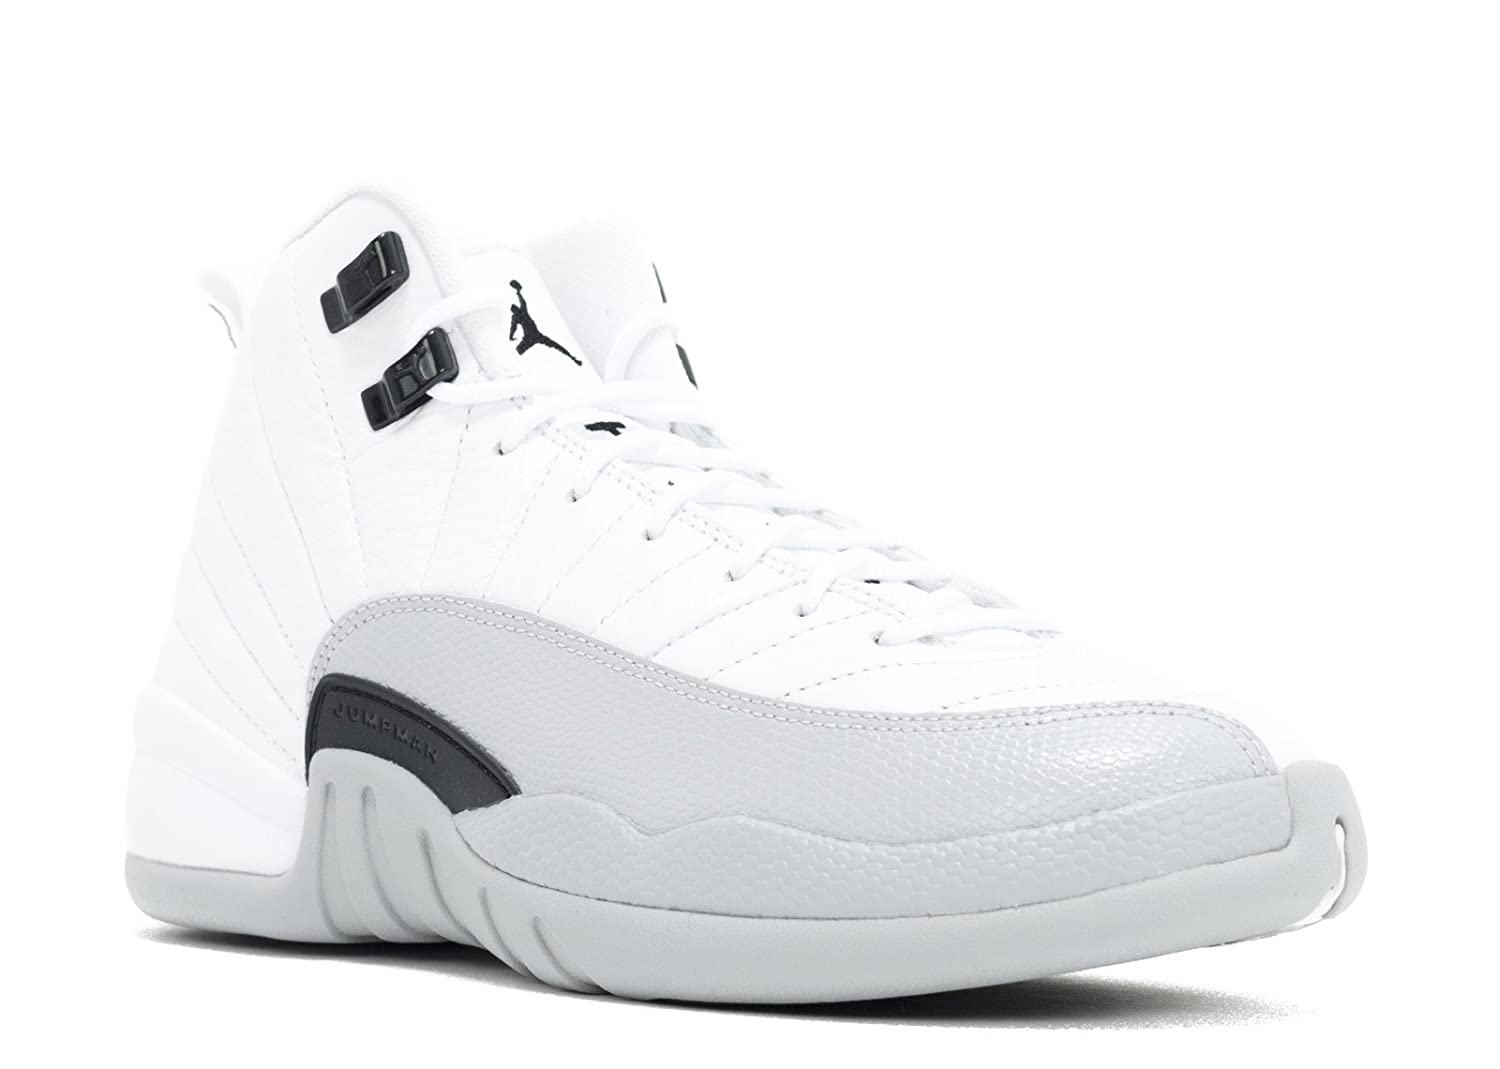 buy popular f0d76 ba6d8 Amazon.com   Nike Air Jordan 12 Retro GG  510815-108  Basketball Barons  White Black-Wolf Grey   Basketball